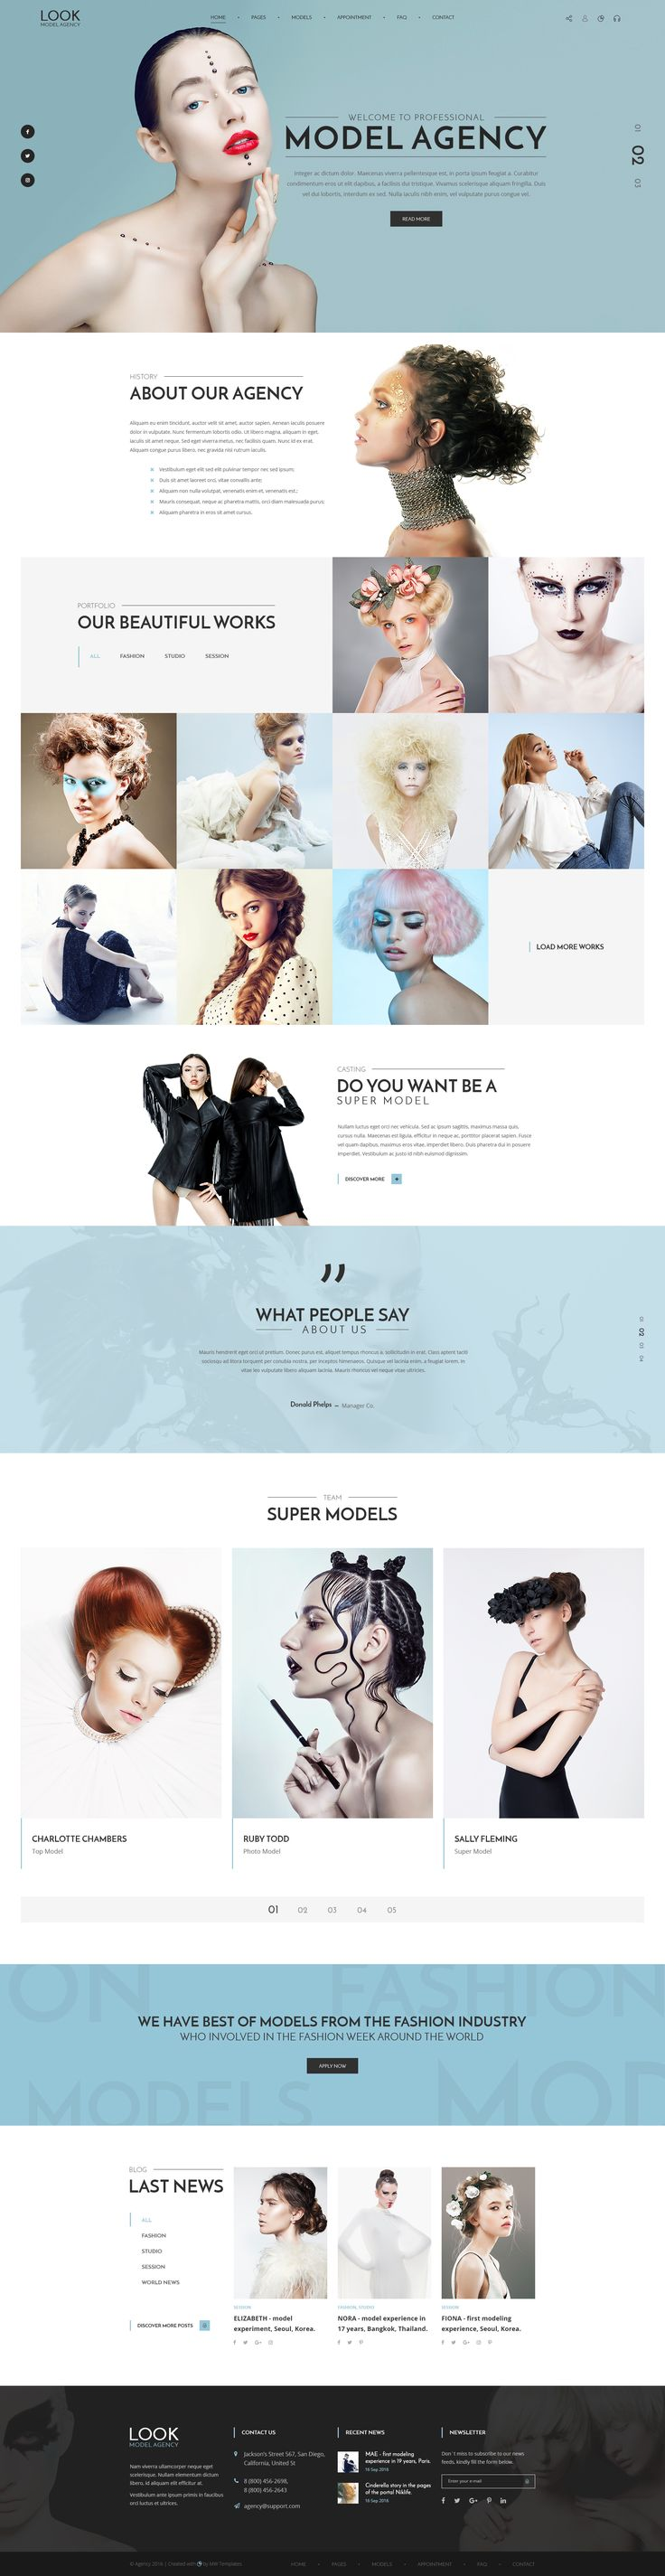 LOOK - Model Agency PSD Template • Download ➝ https://themeforest.net/item/look-model-agency-psd-template/16992958?ref=pxcr